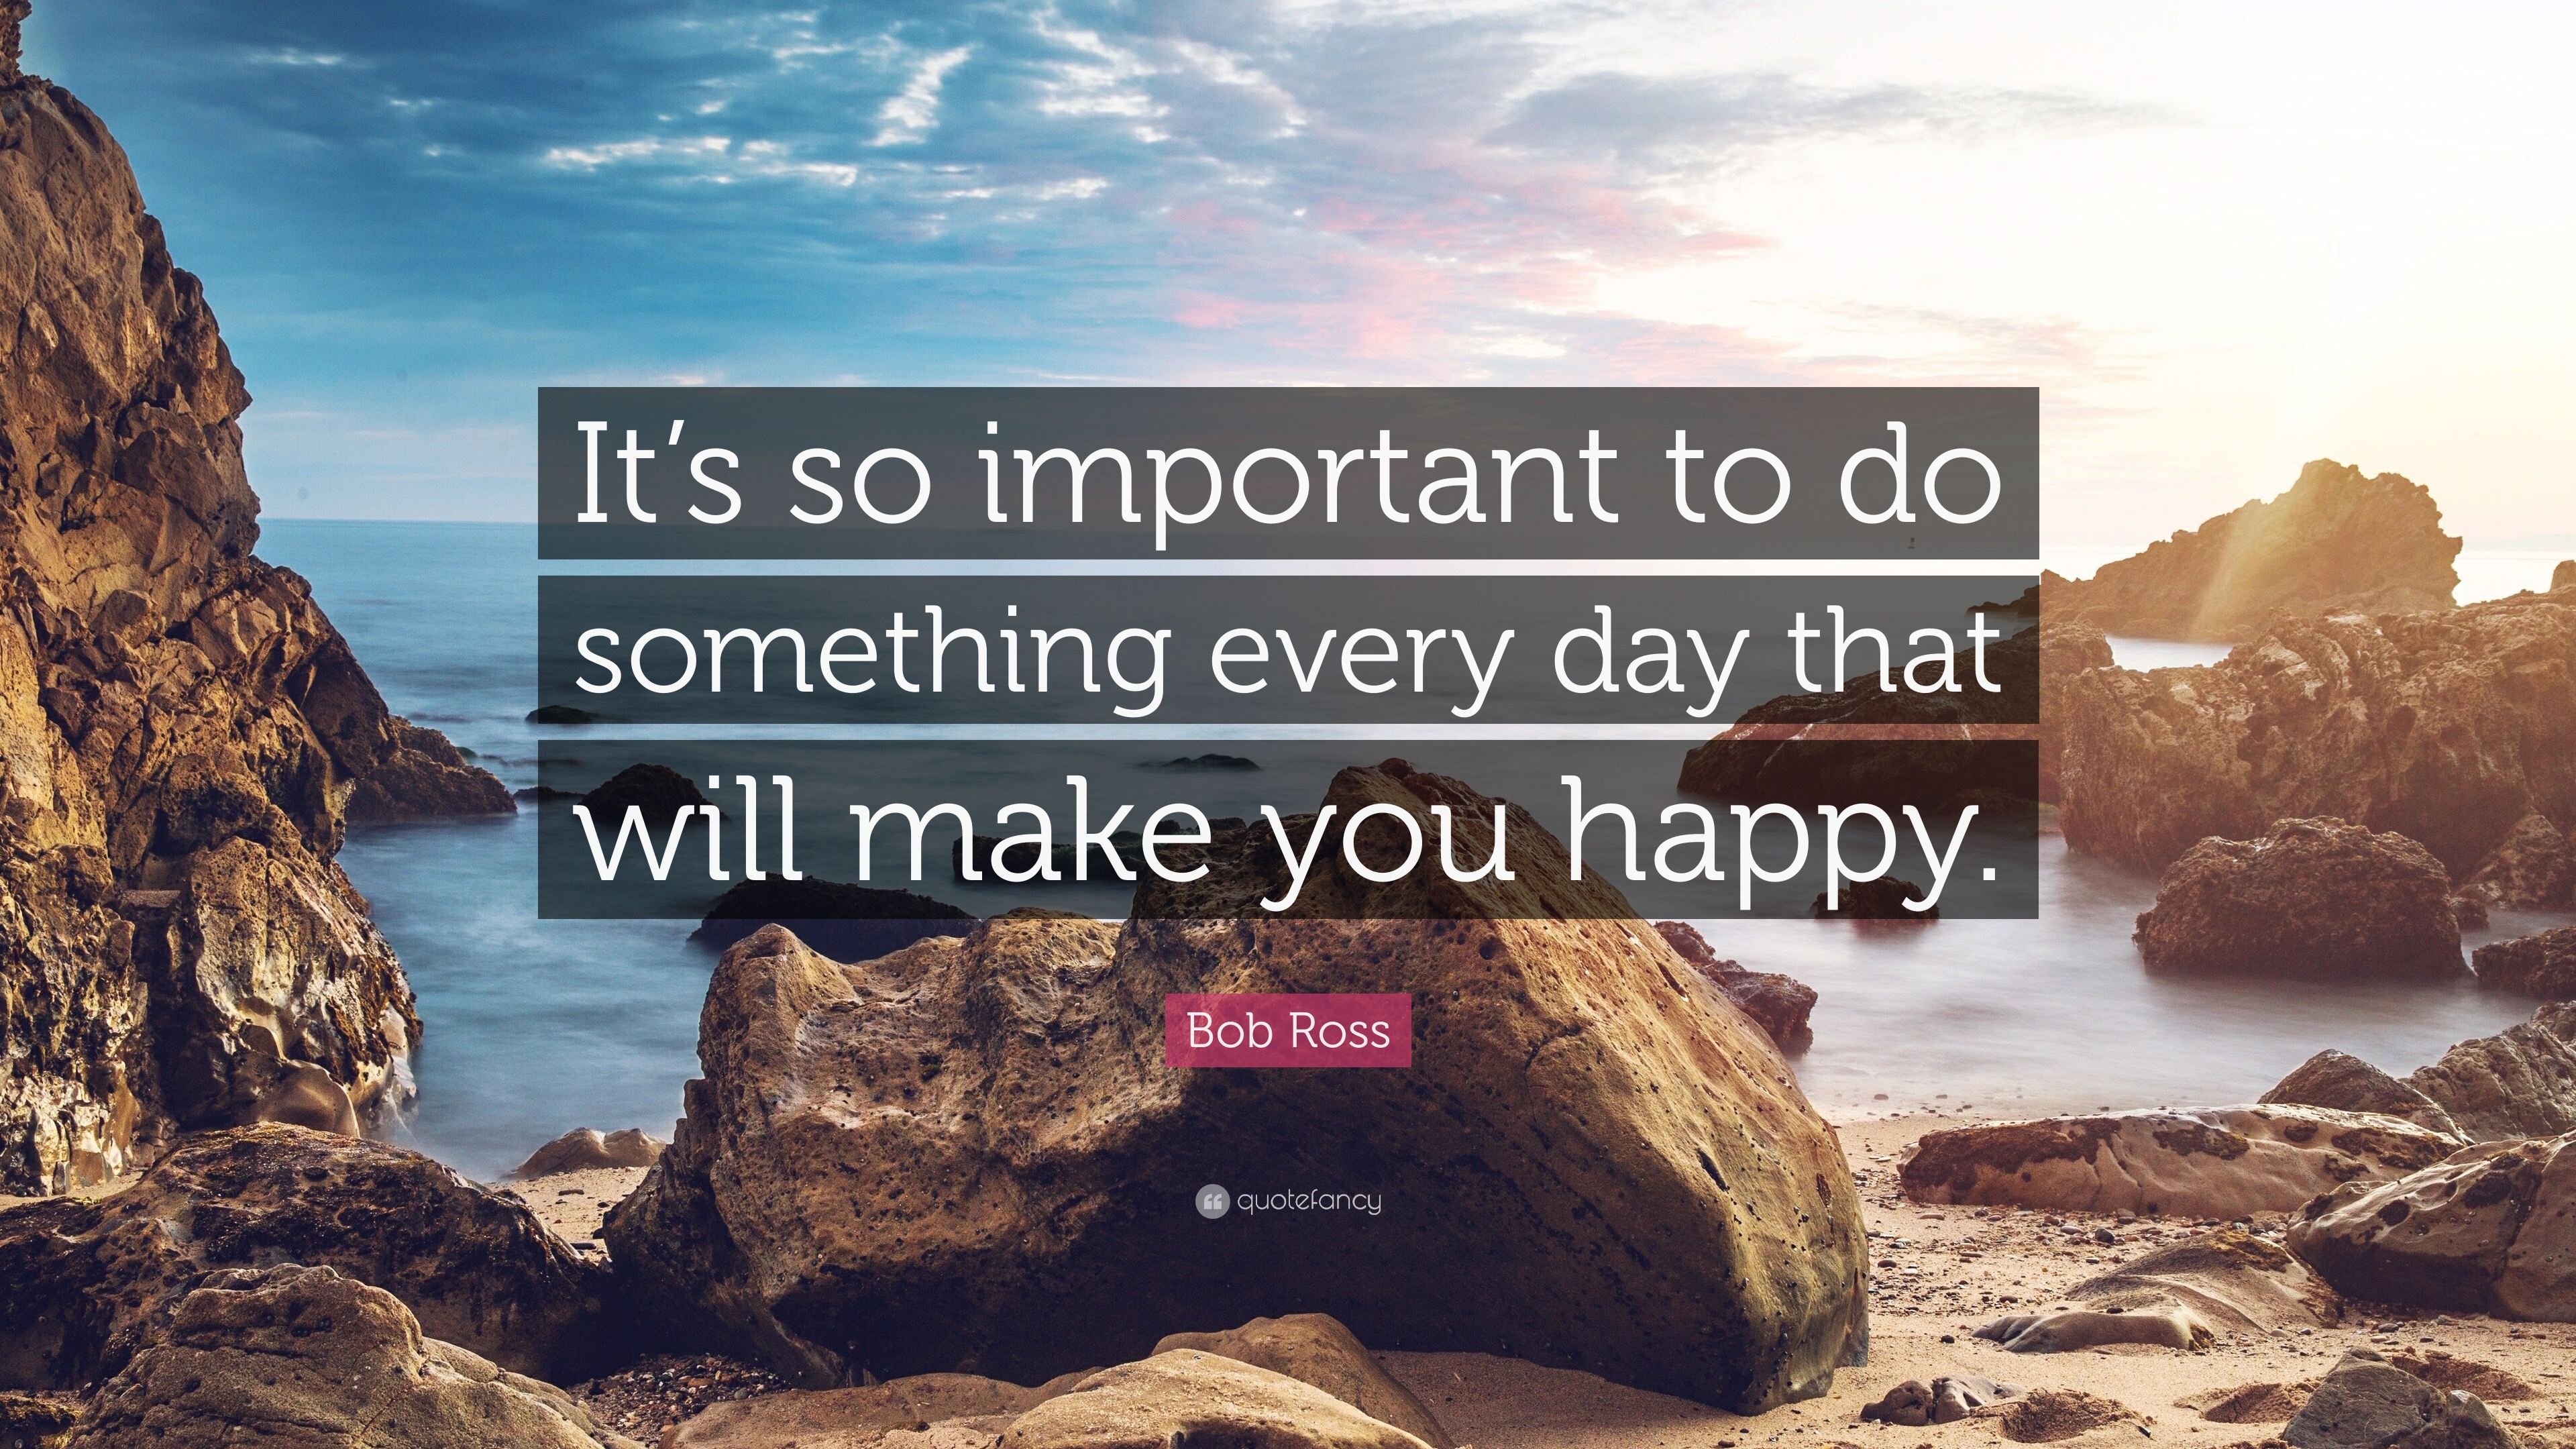 [Image] Do something everyday that makes you happy